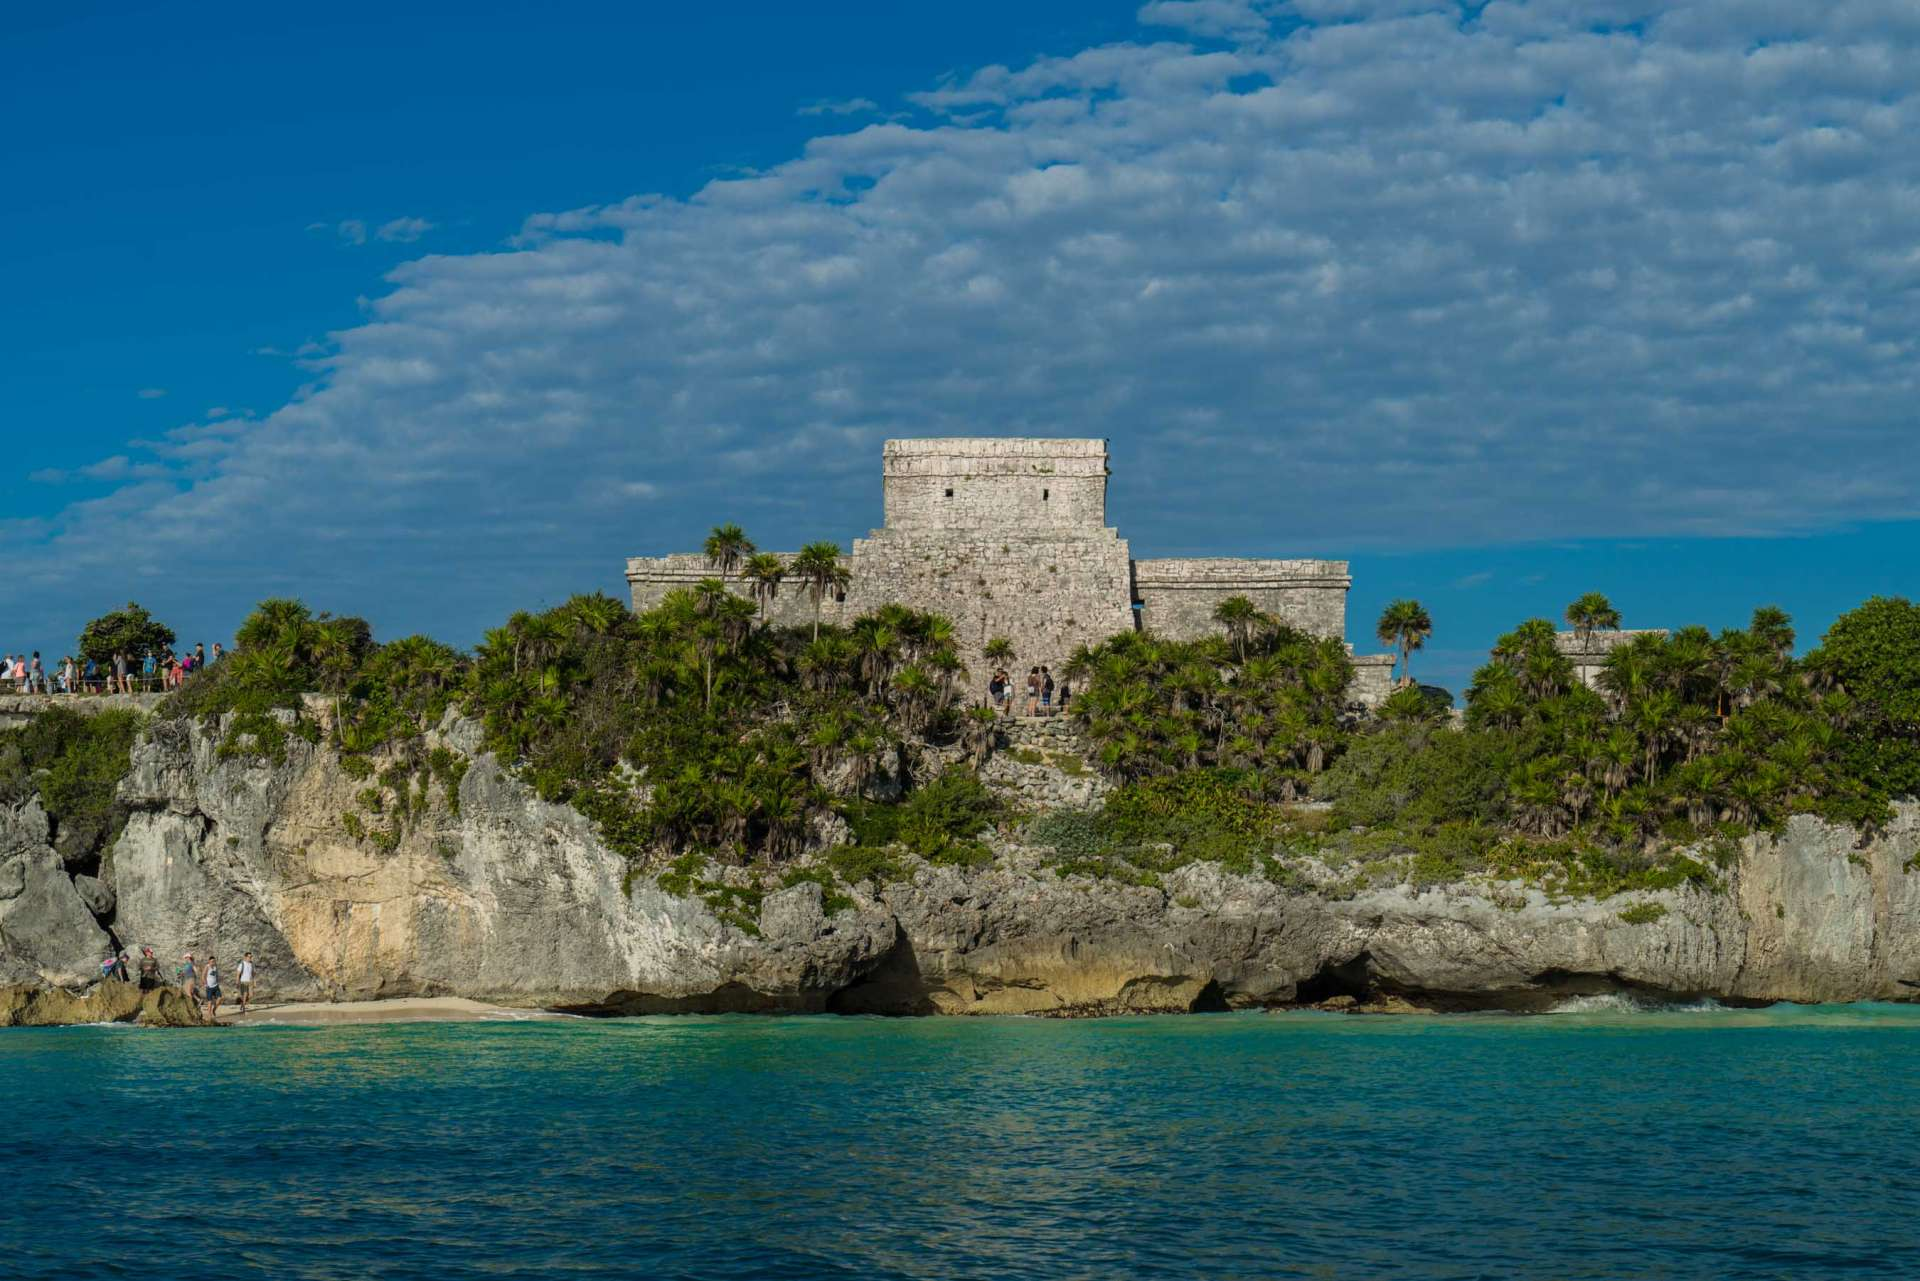 Tulum archeological site ruins from the sea